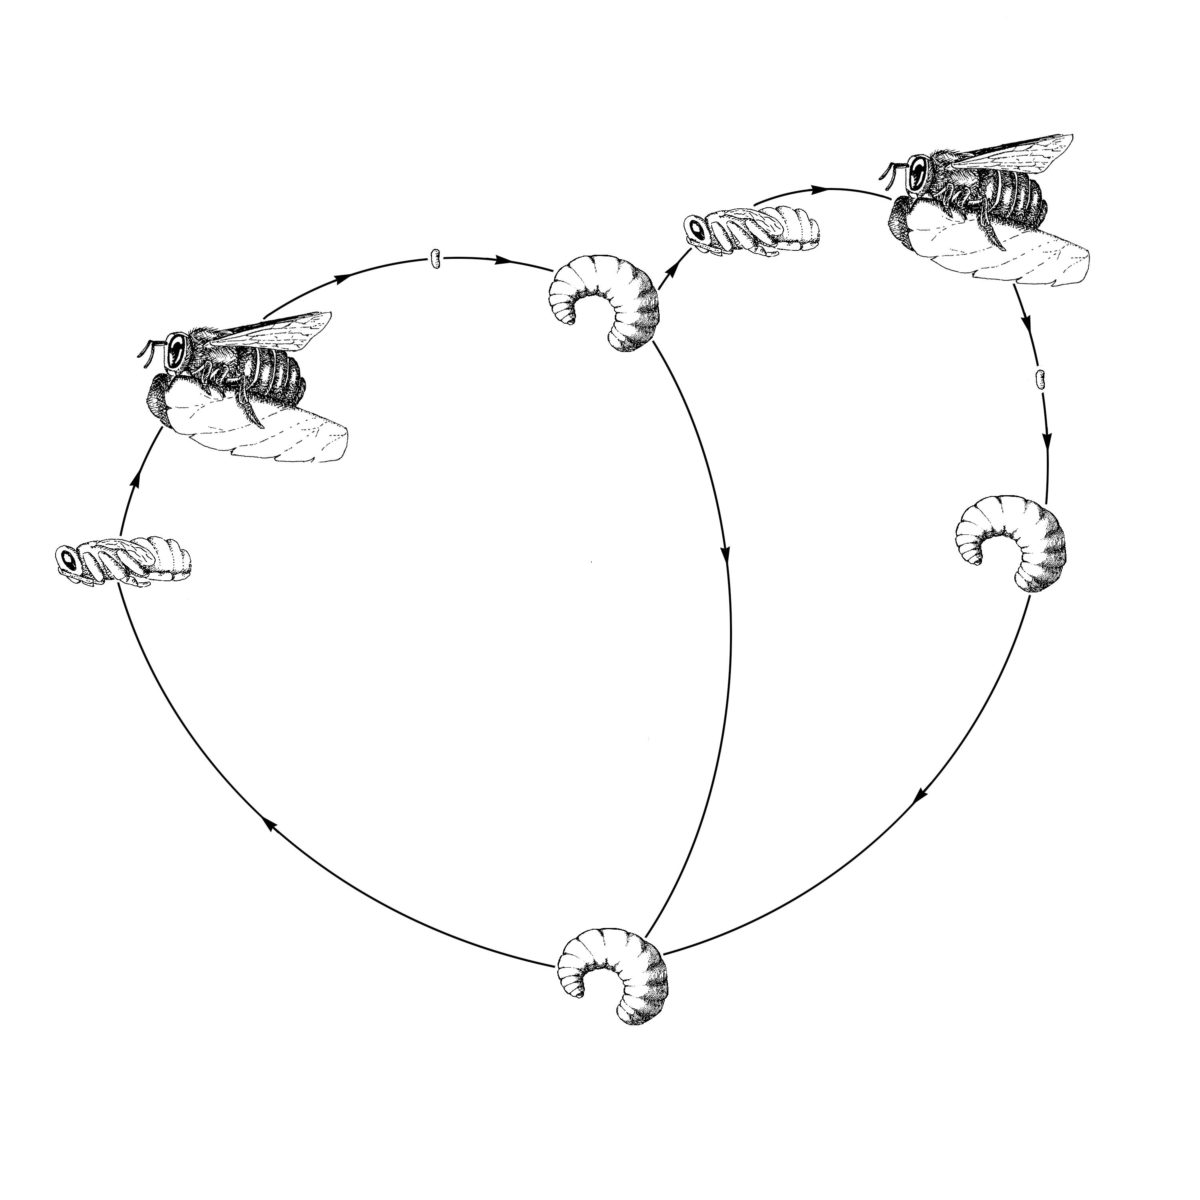 Lifecycle of the alfalfa leafcutter bee.